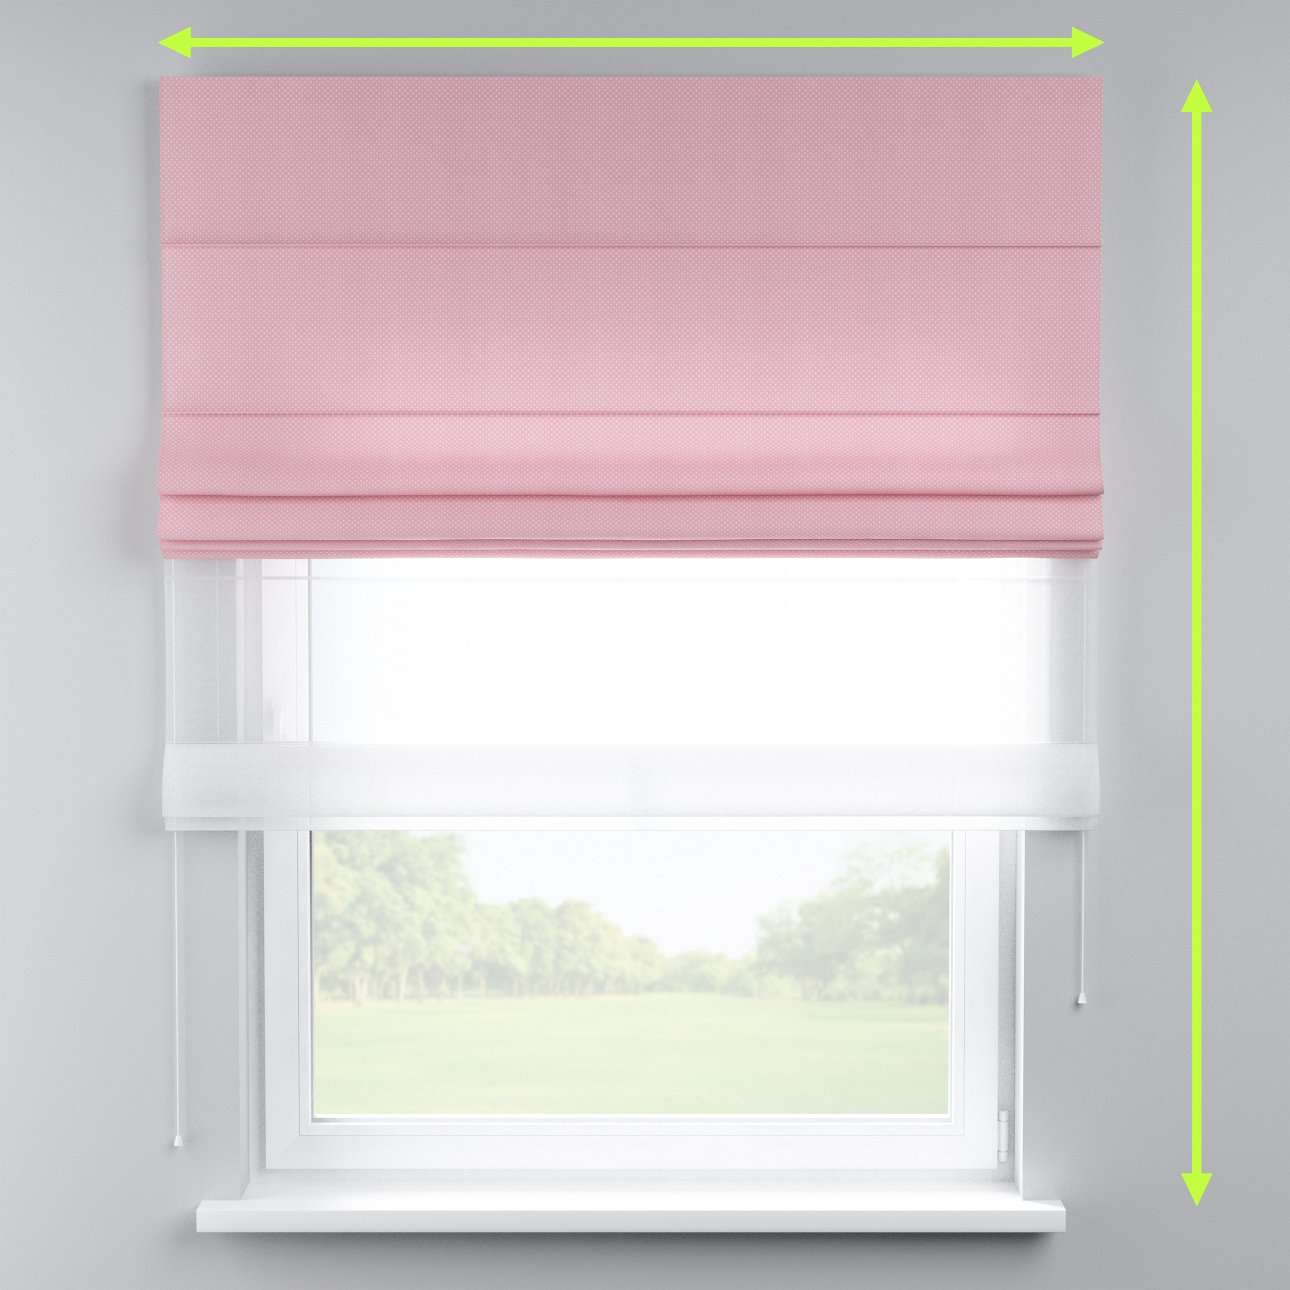 Voile and fabric roman blind (DUO II) in collection Ashley, fabric: 137-46